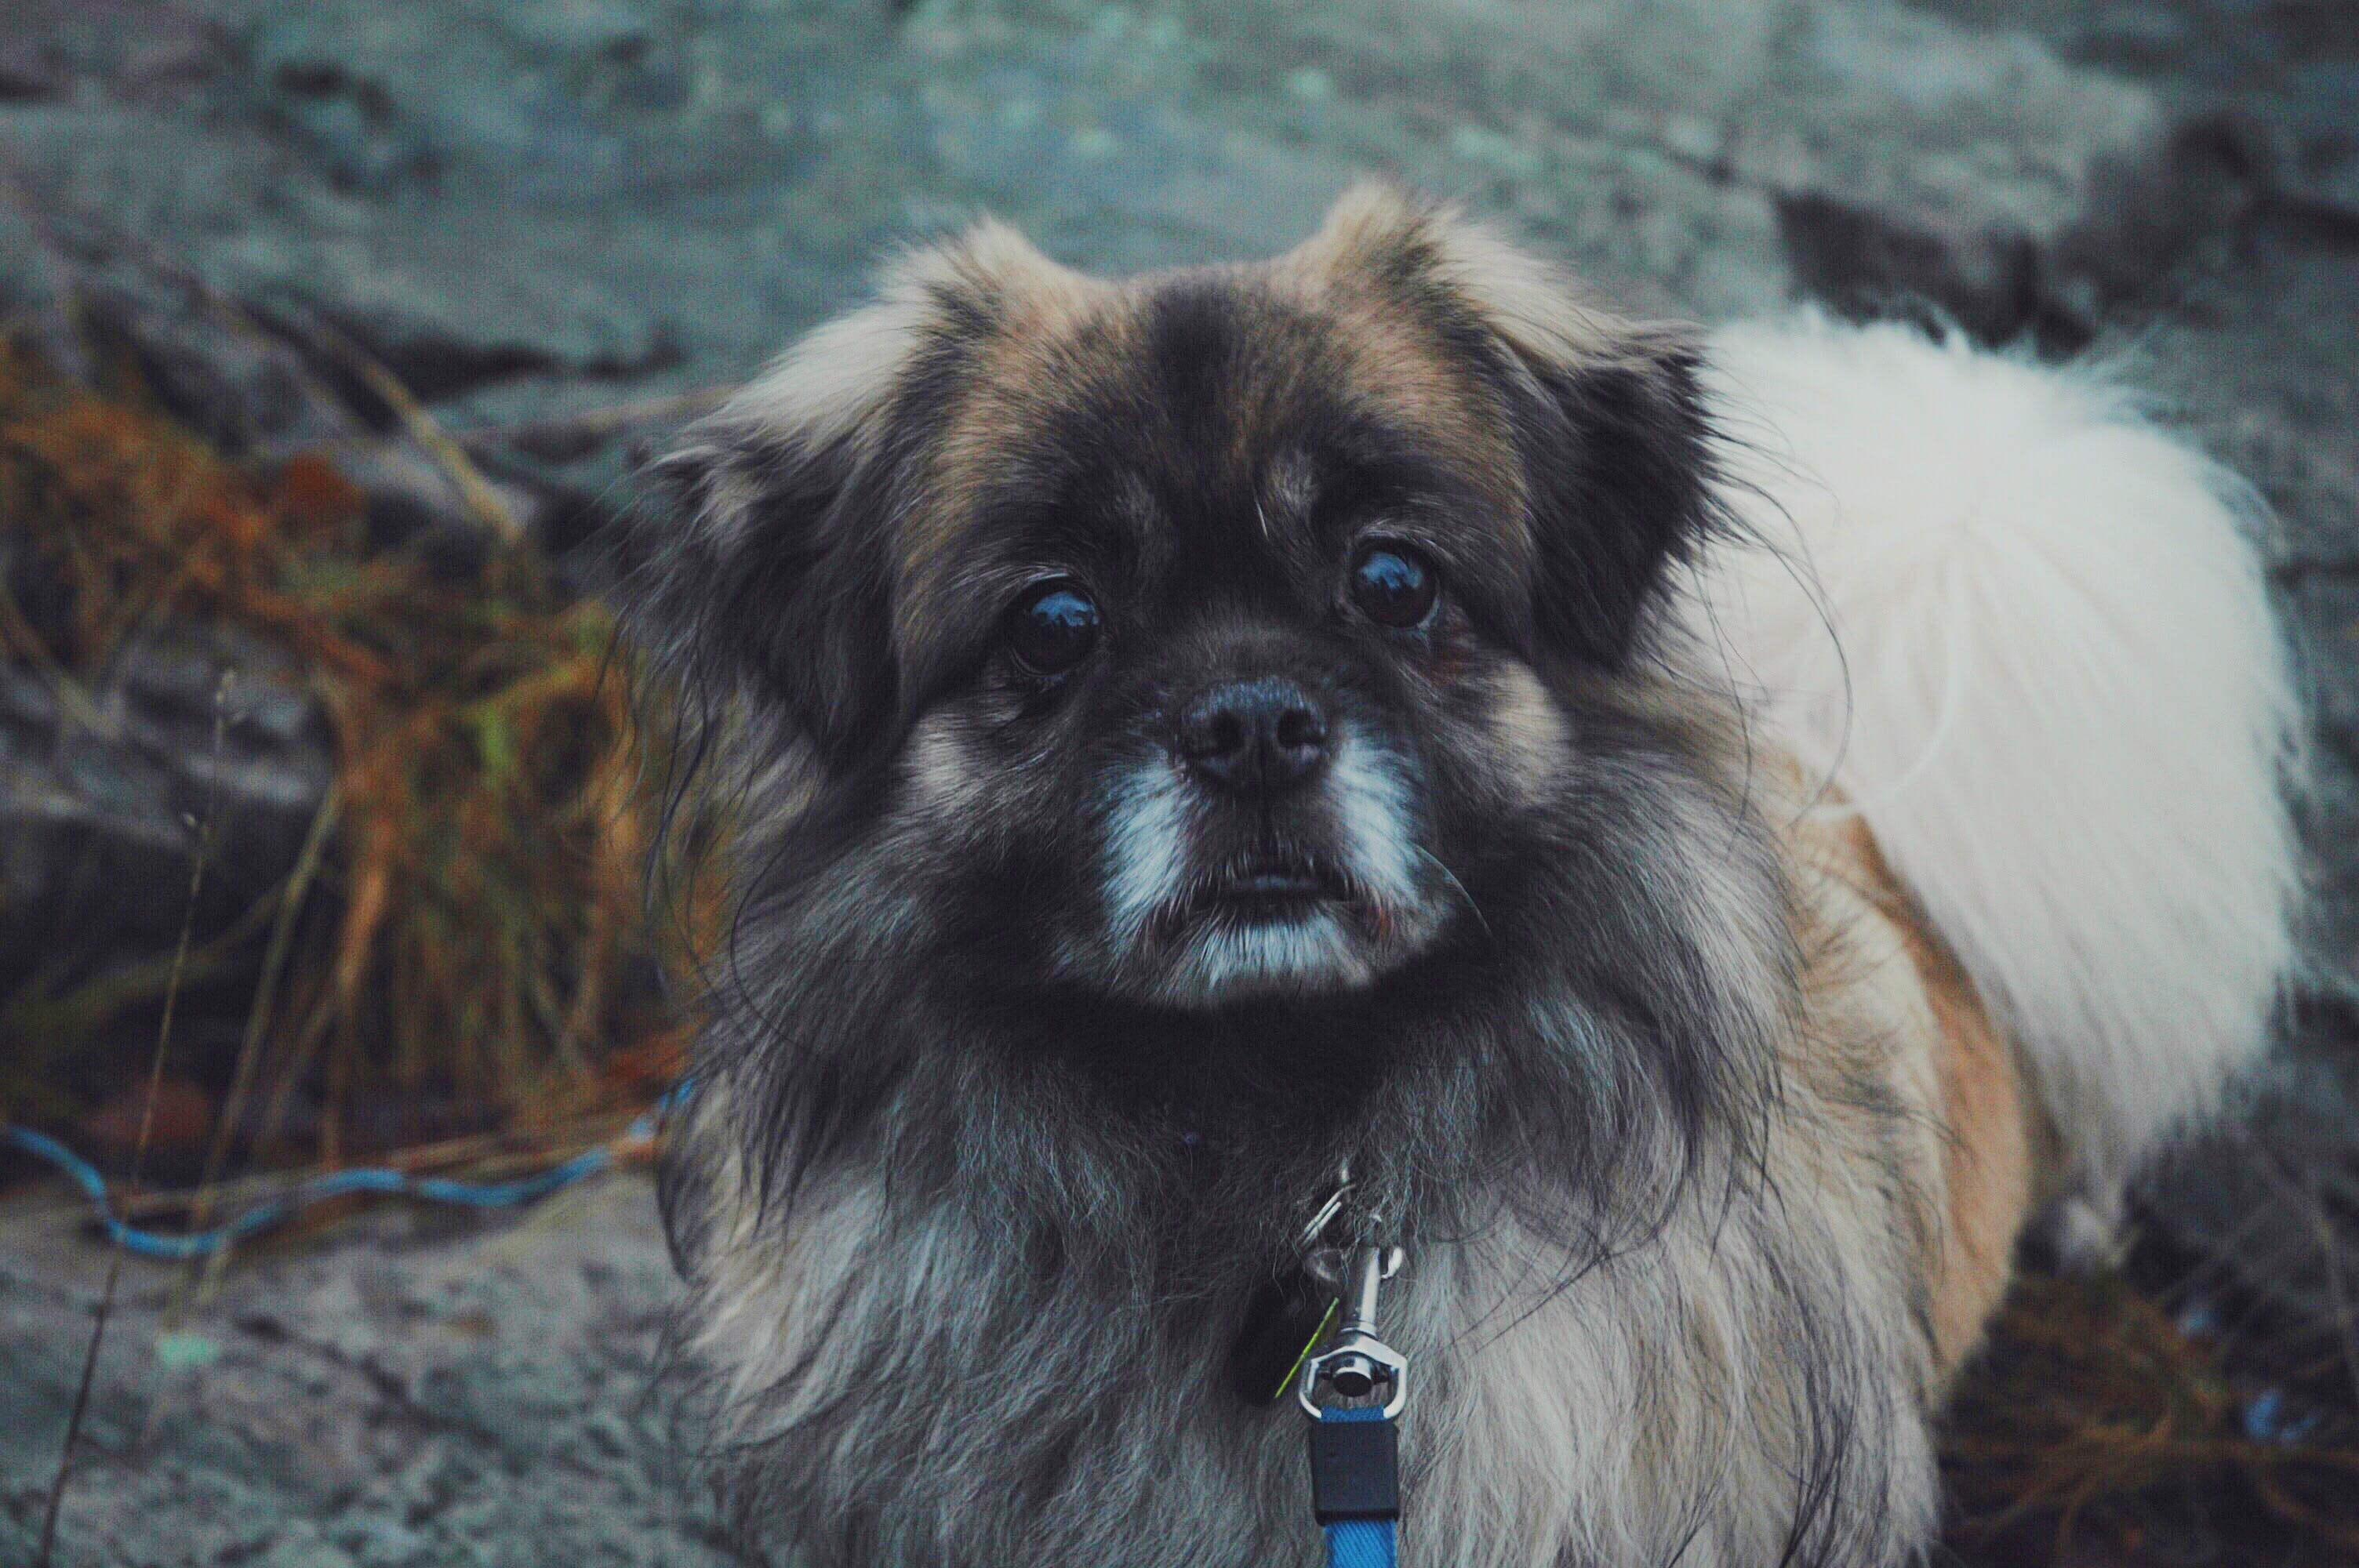 Adult Brown and White Pekingese Standing on Gray Rock